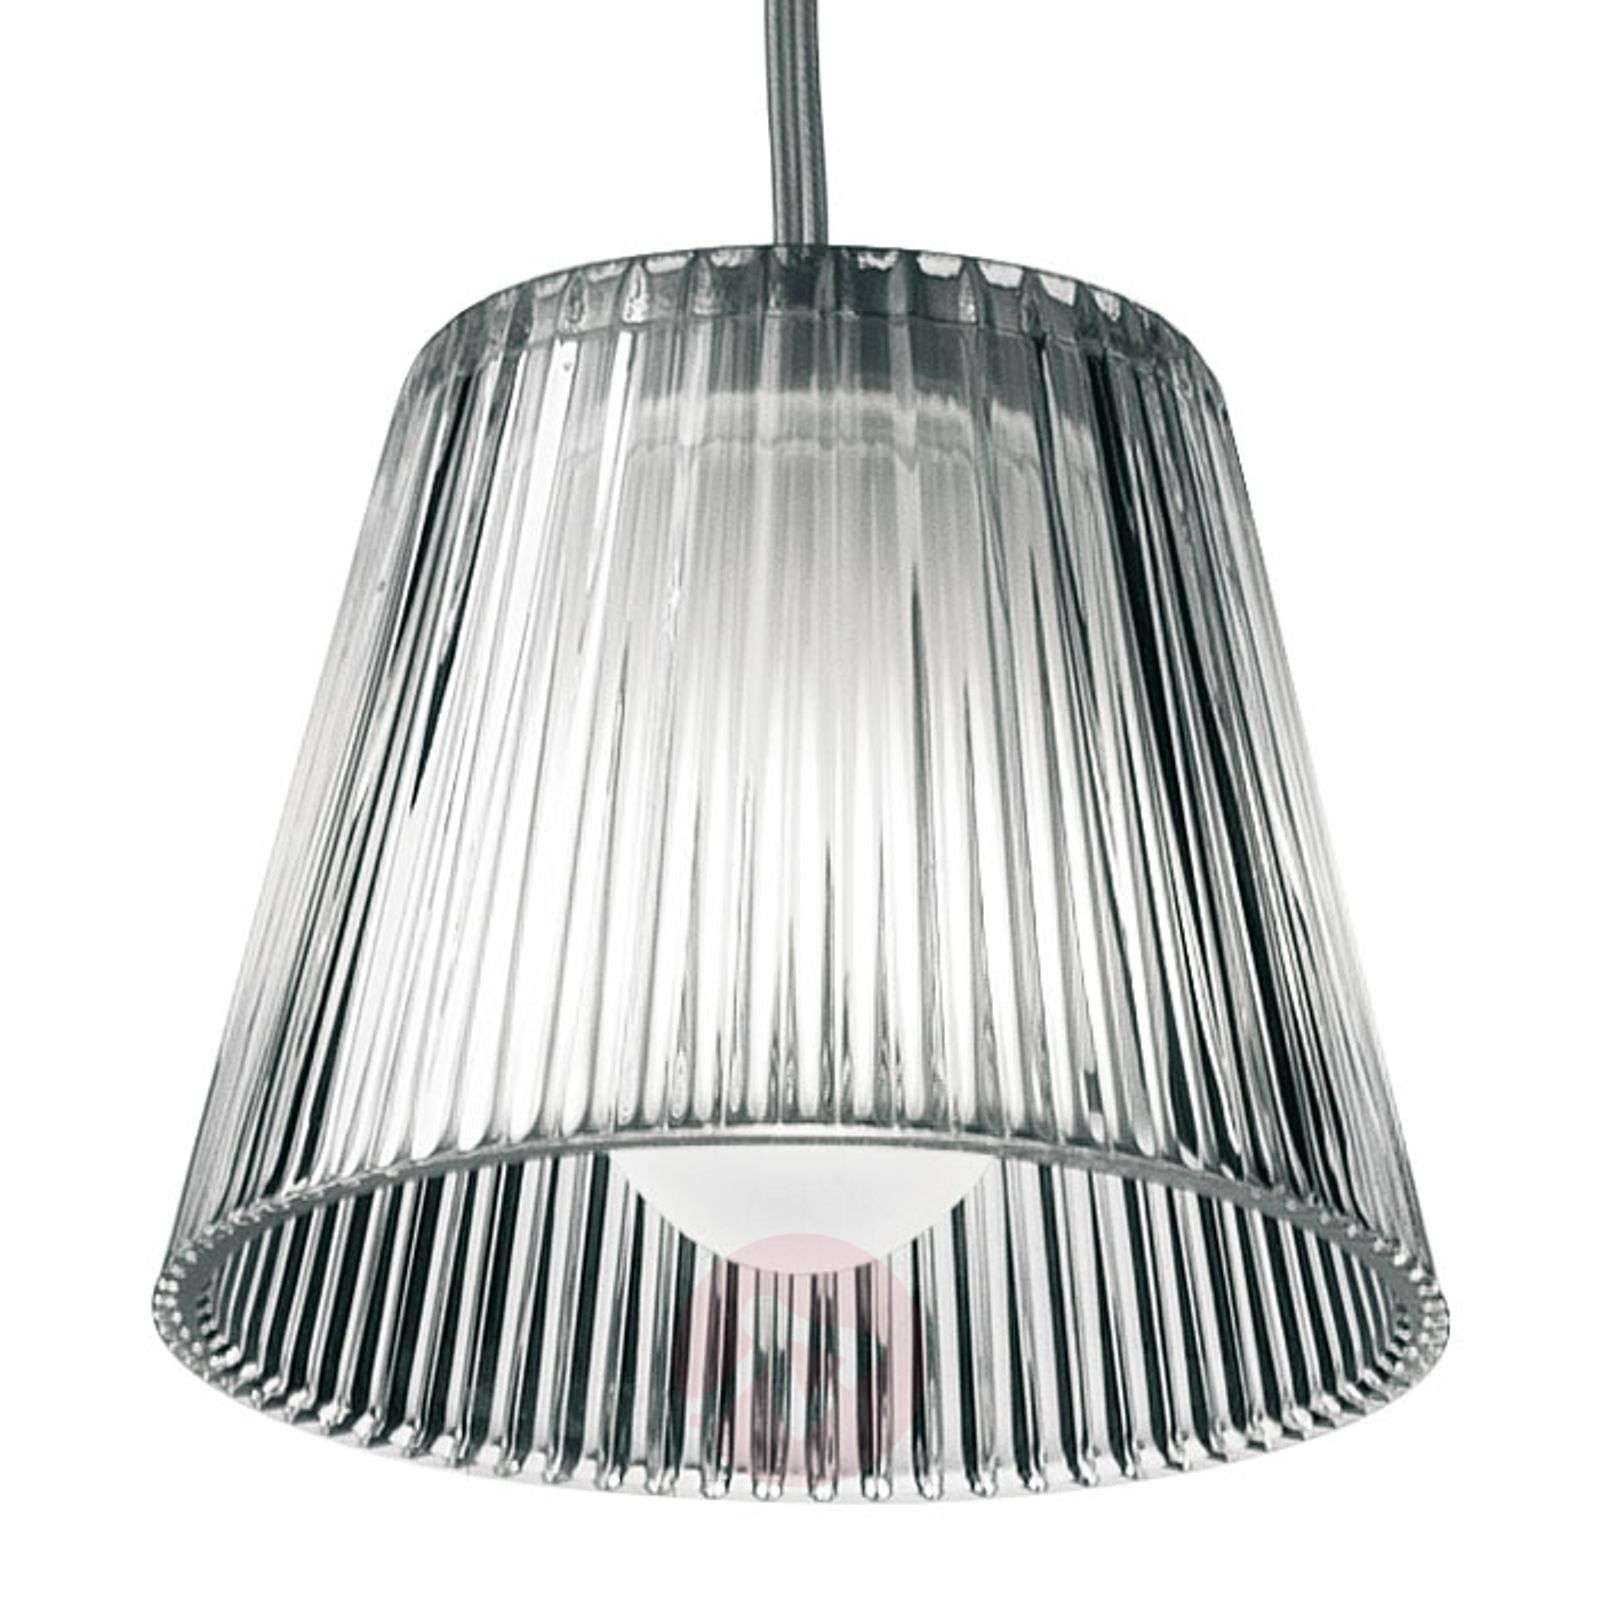 Small Romeo Babe S pendant lamp by FLOS   Lights.co.uk